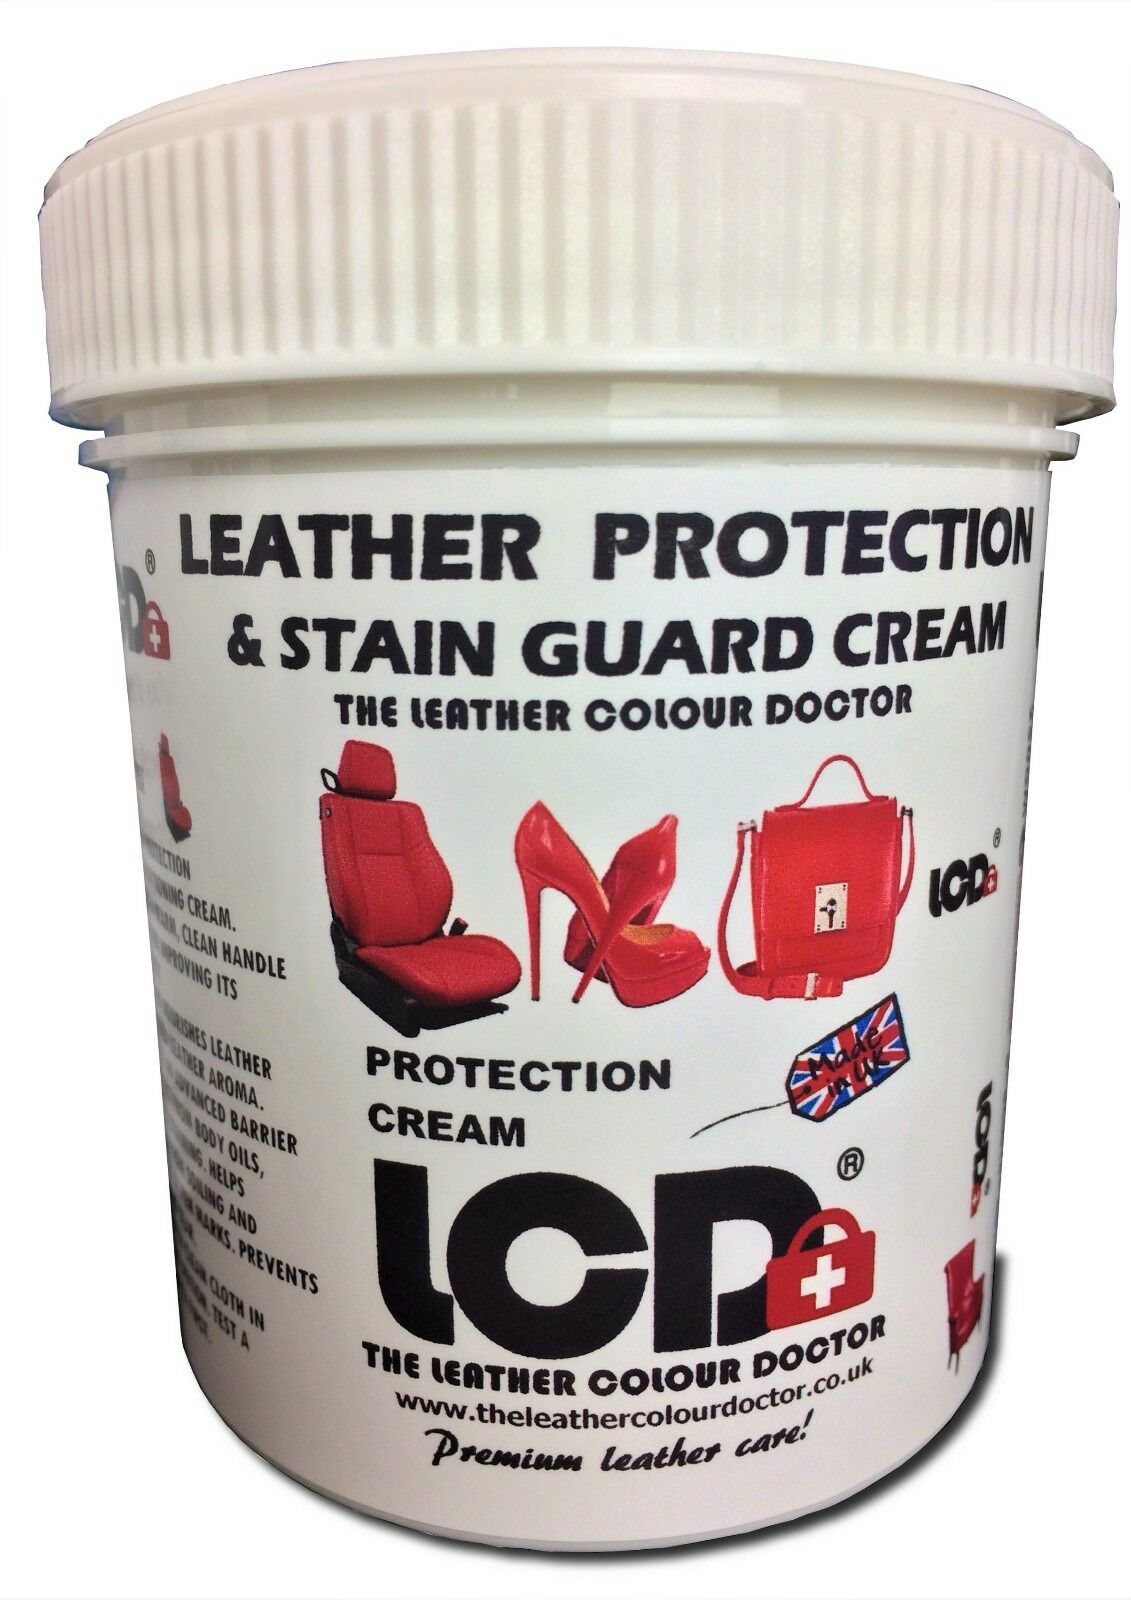 Leather protection stain guard cream conditioning balm with added leather aroma